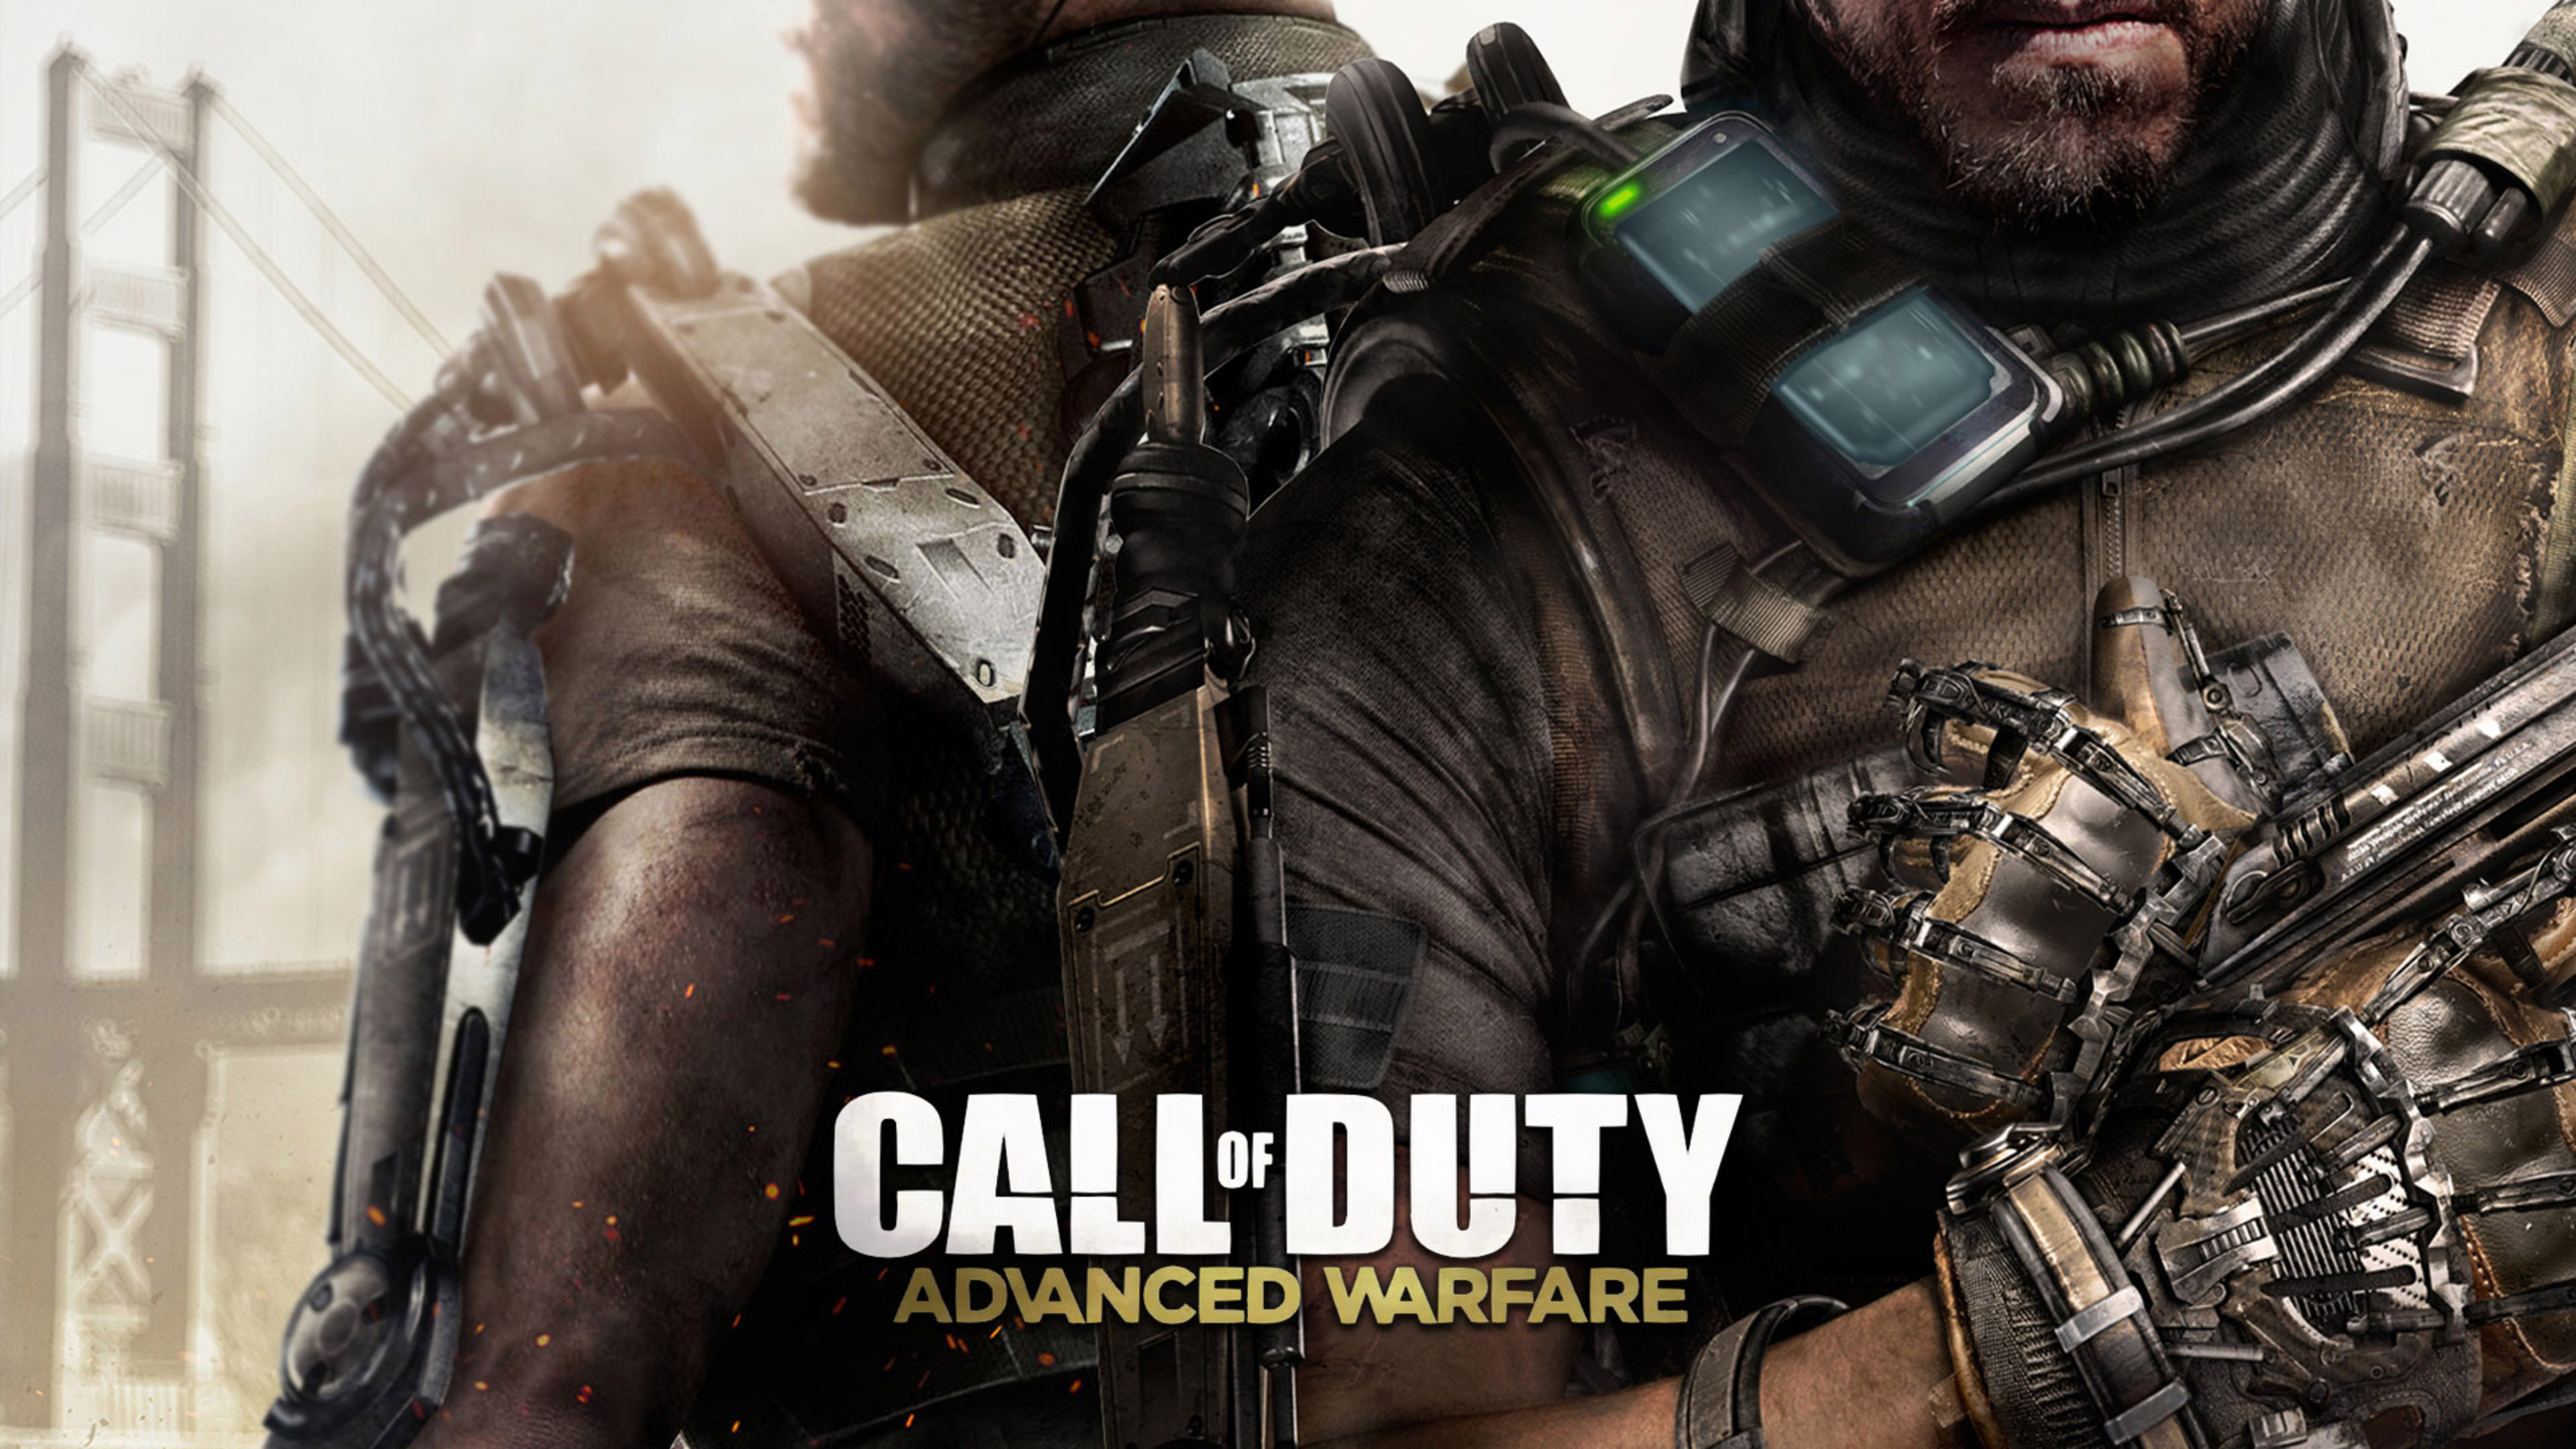 Call-Of-Duty-Advanced-Warfare2.jpg